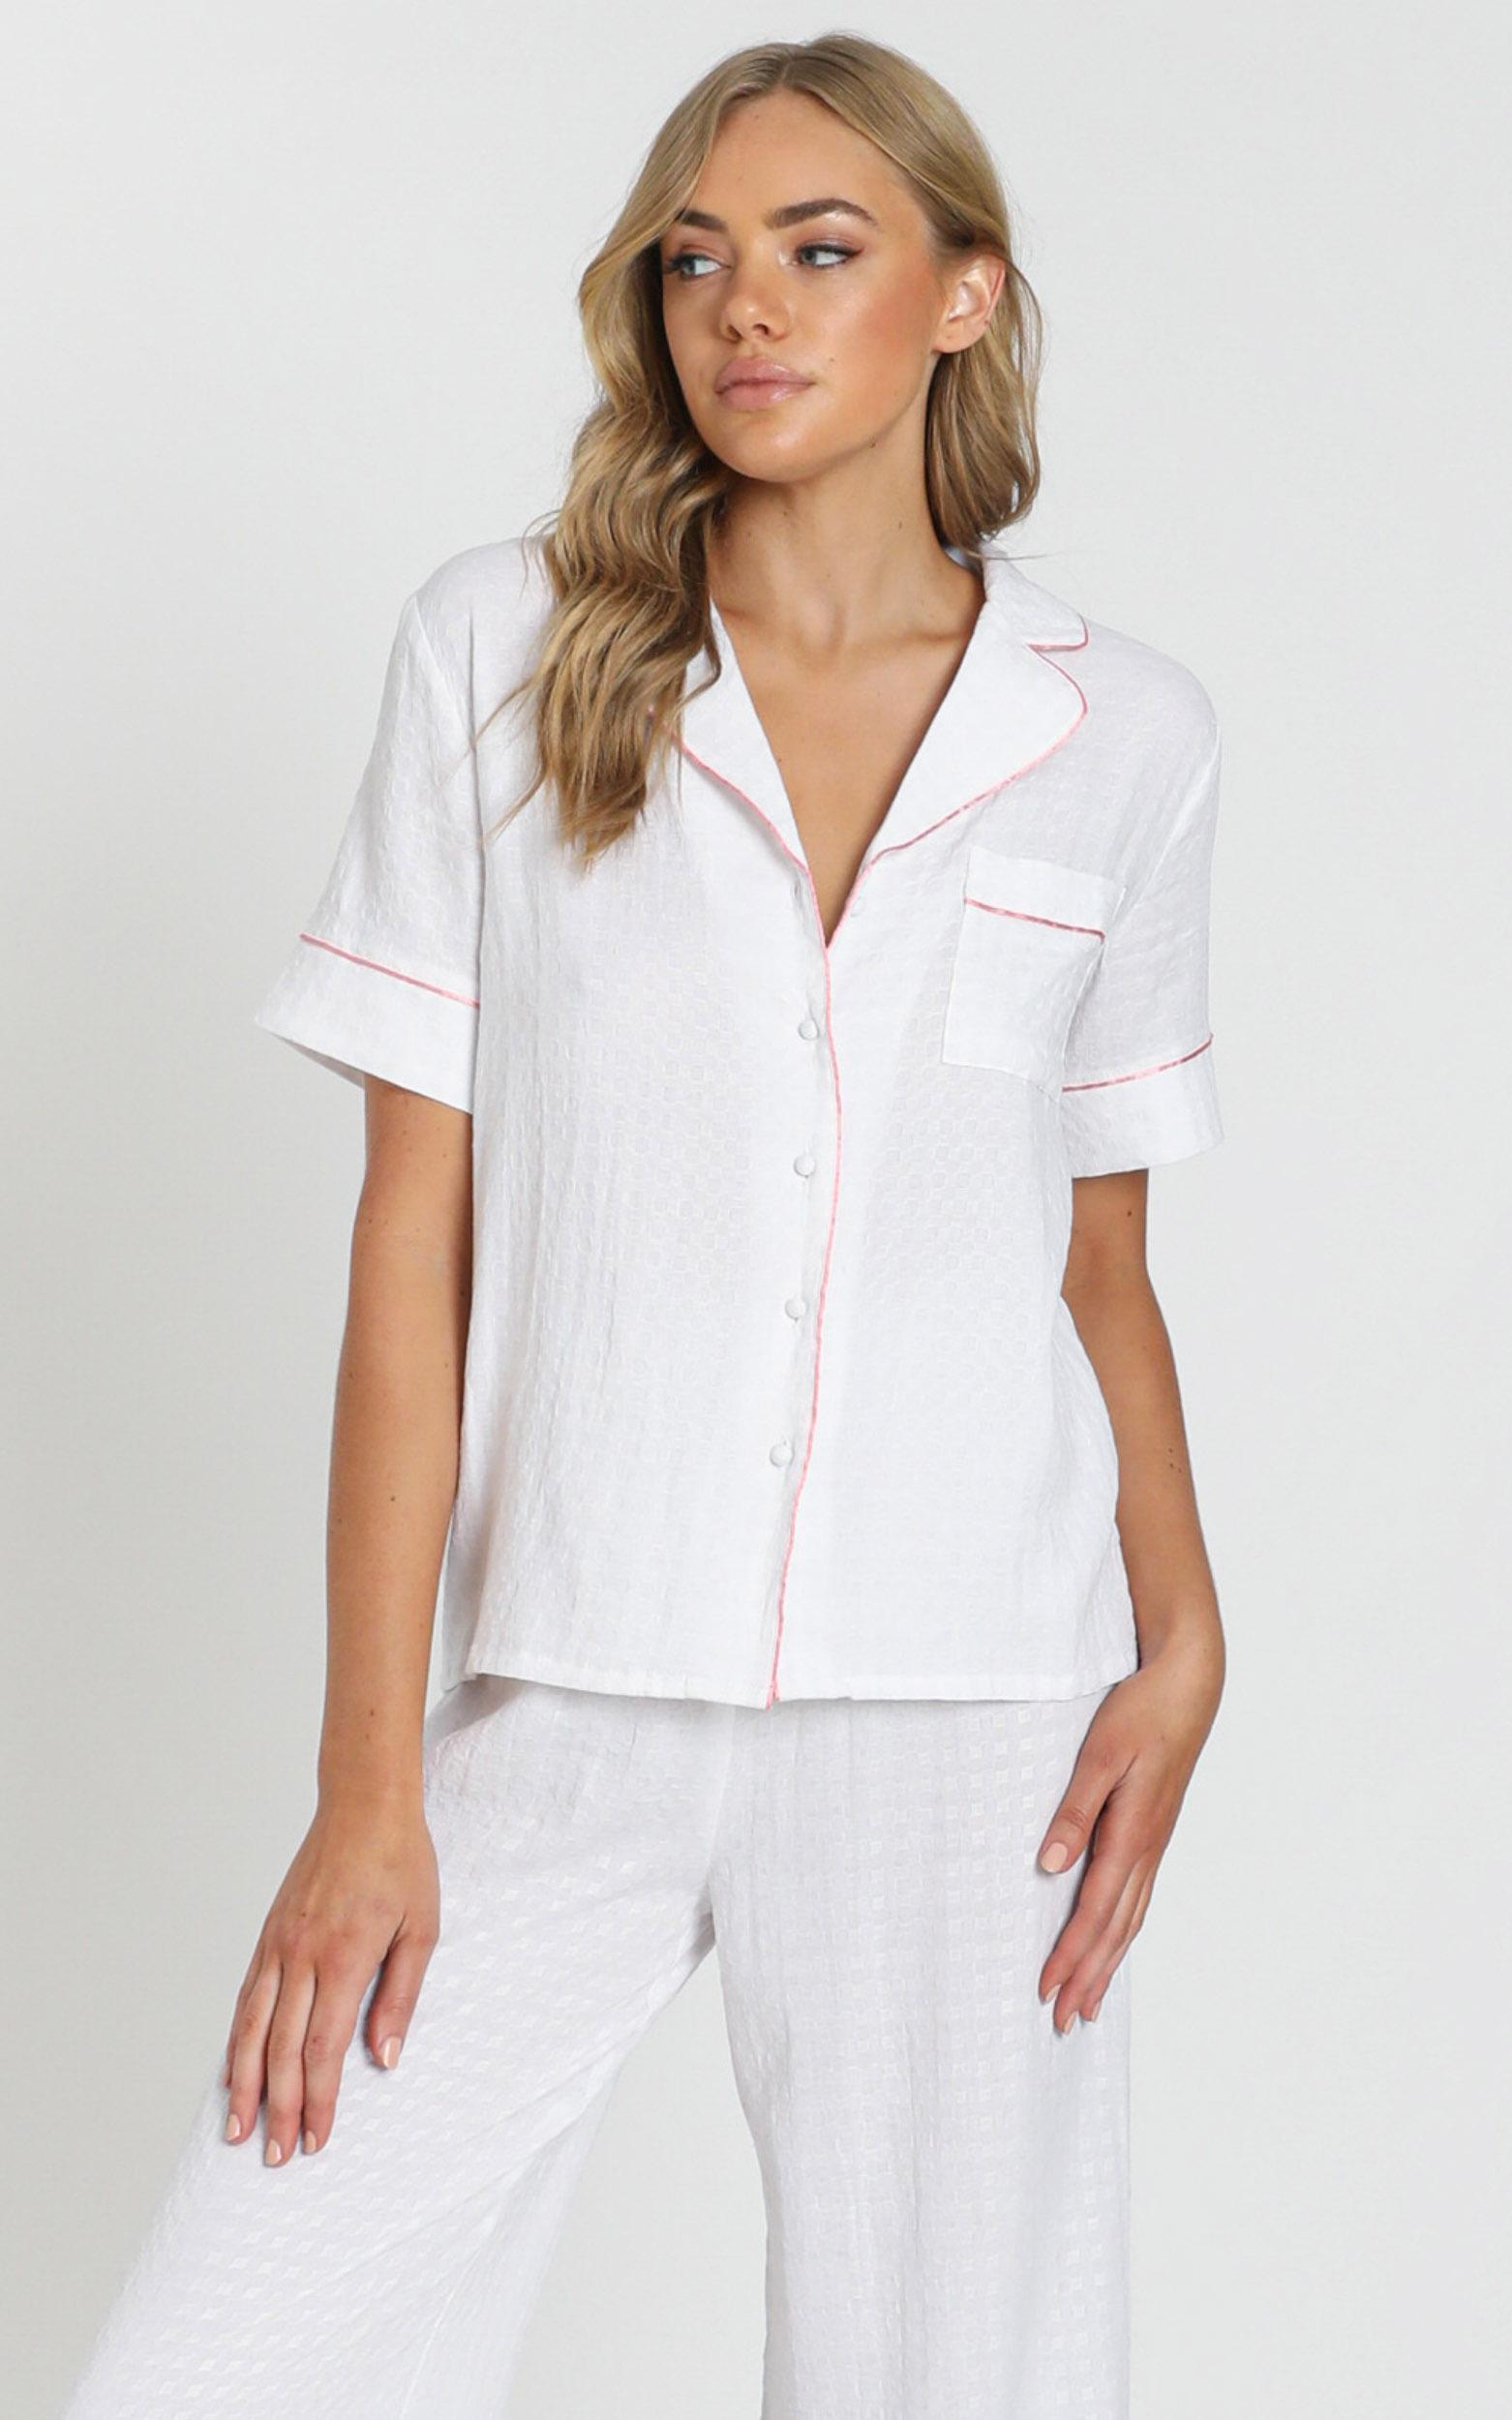 Sleeping in Pyjama Top In White Gingham - 20 (XXXXL), White, hi-res image number null